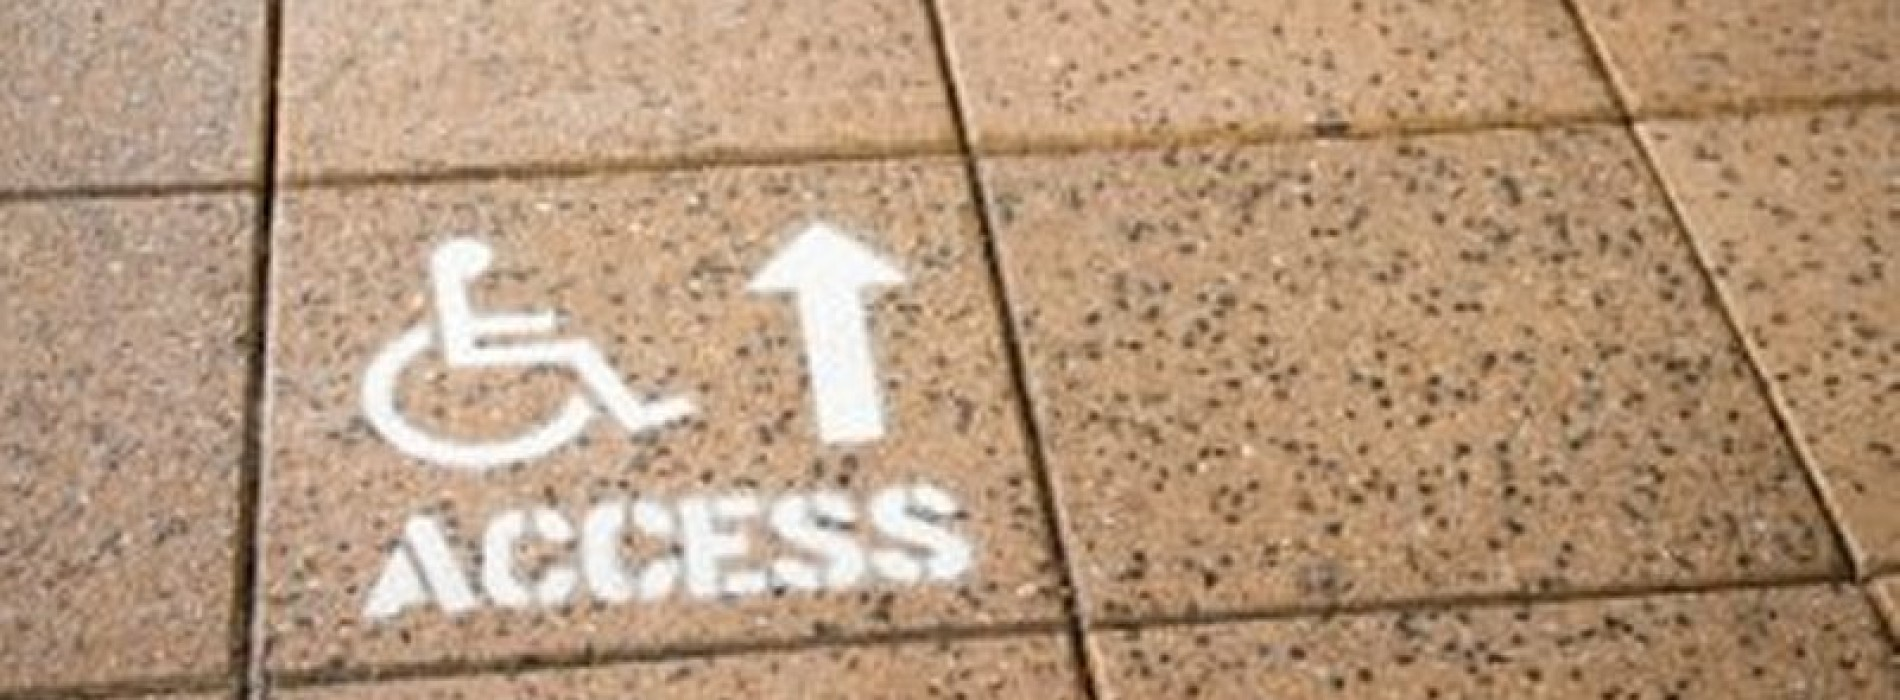 What Is Access - What is access flooring